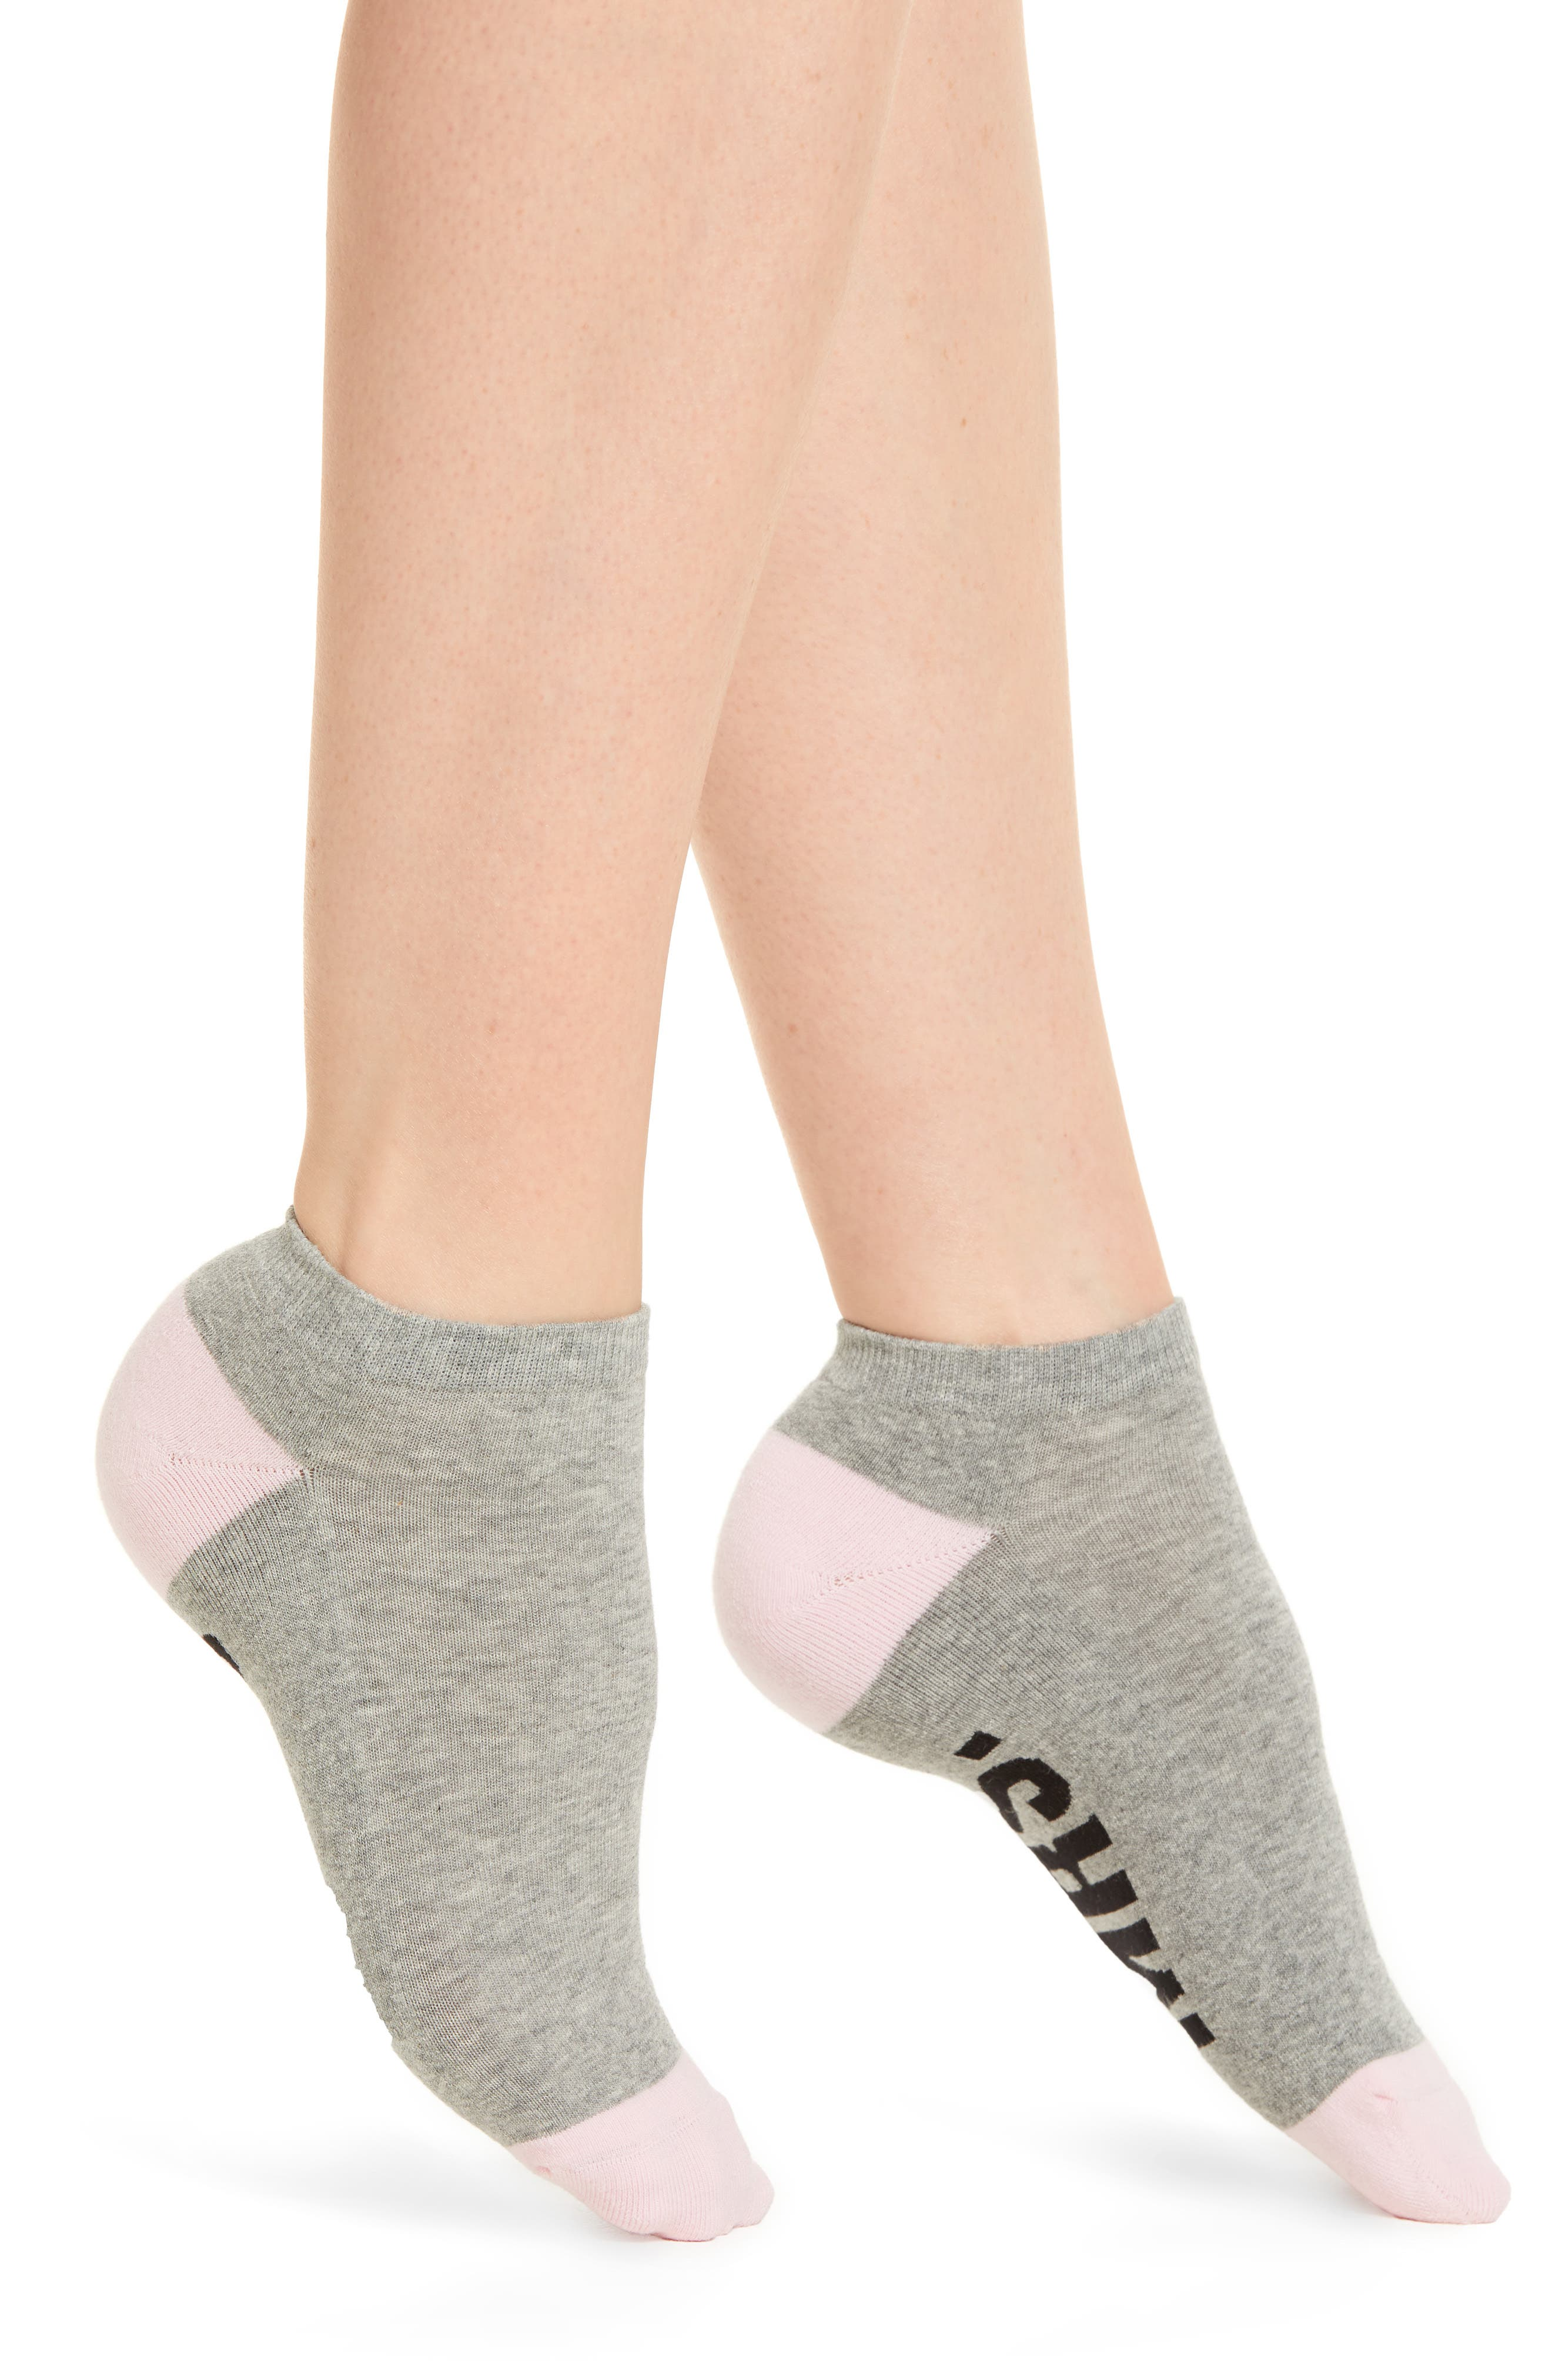 Miss to Mrs. Low-Cut Socks,                         Main,                         color, Grey Heather